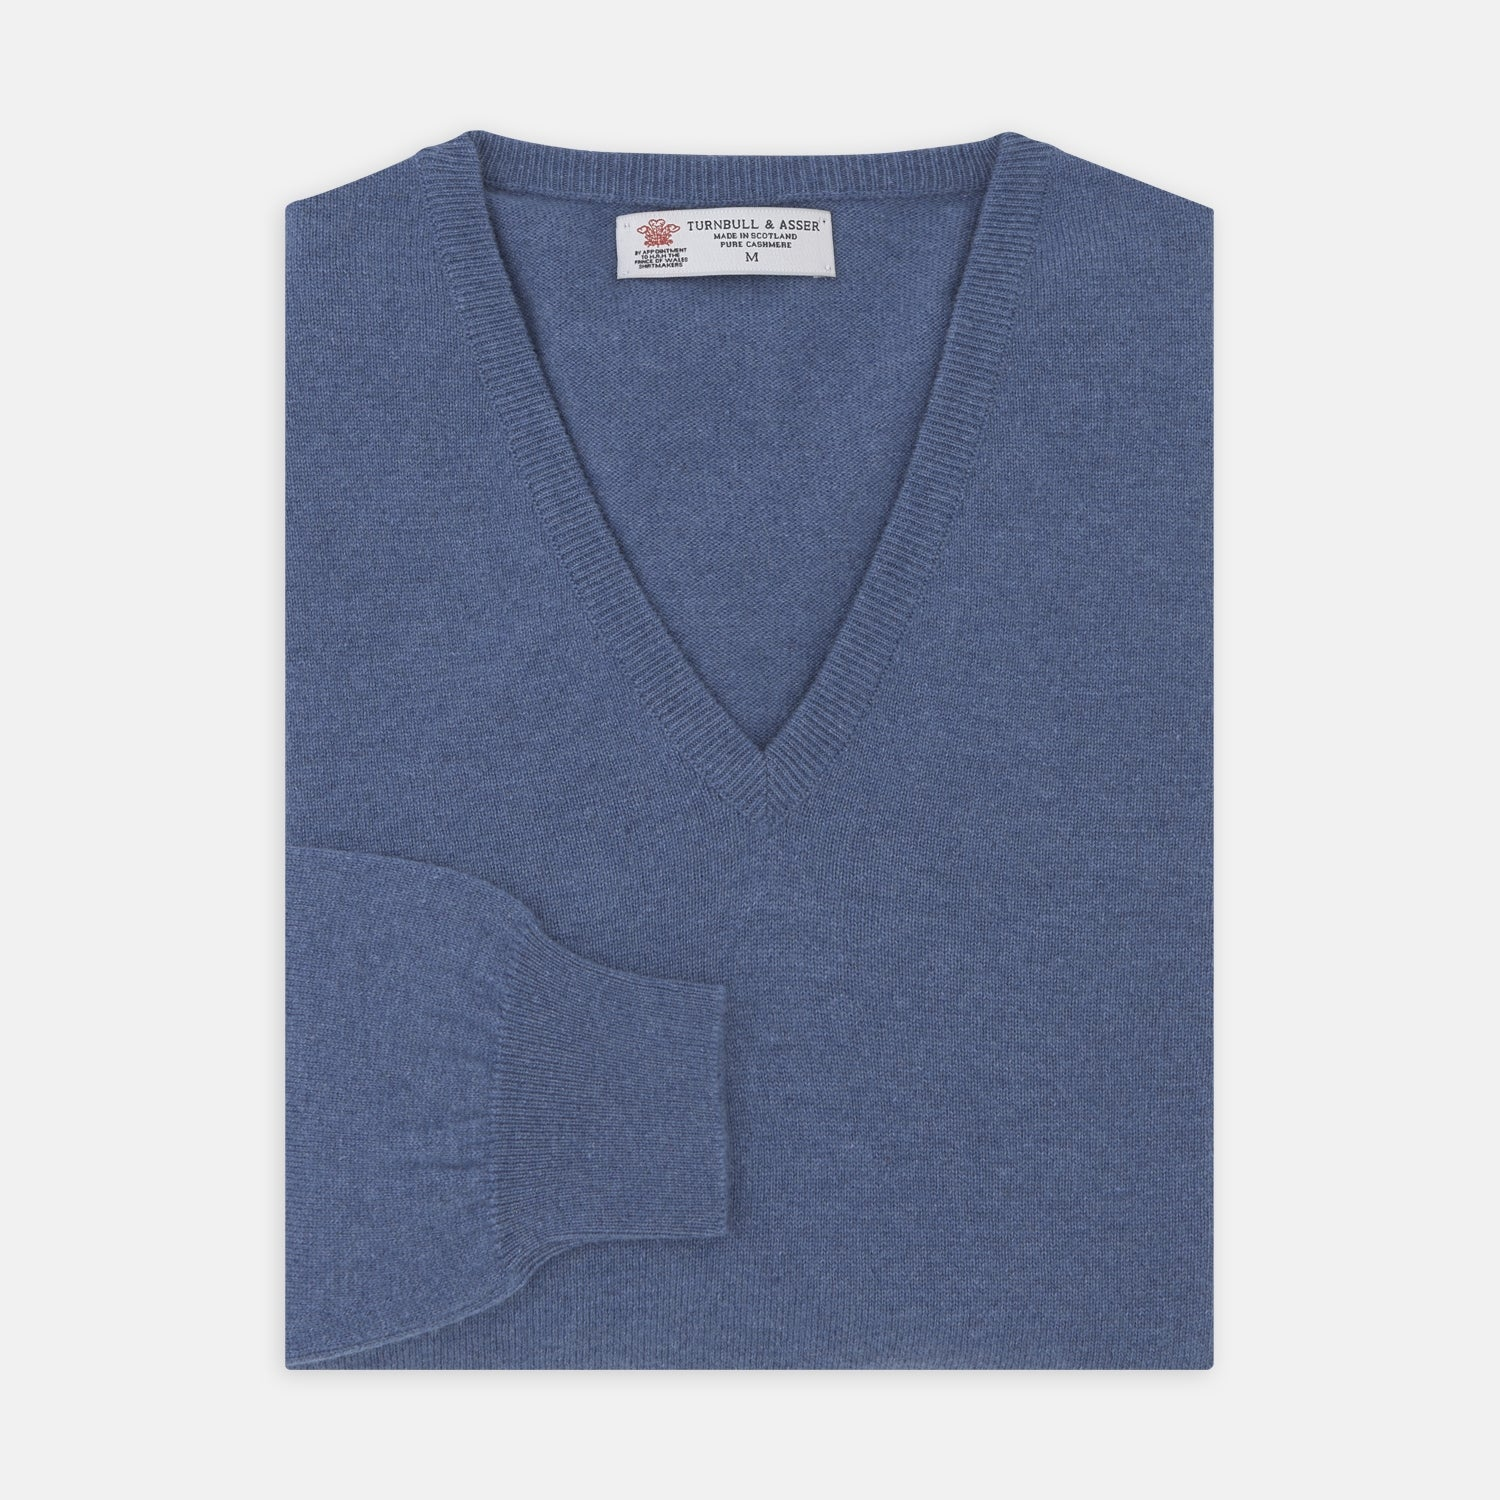 Blue V-Neck Cashmere Jumper - XXL from Turnbull & Asser